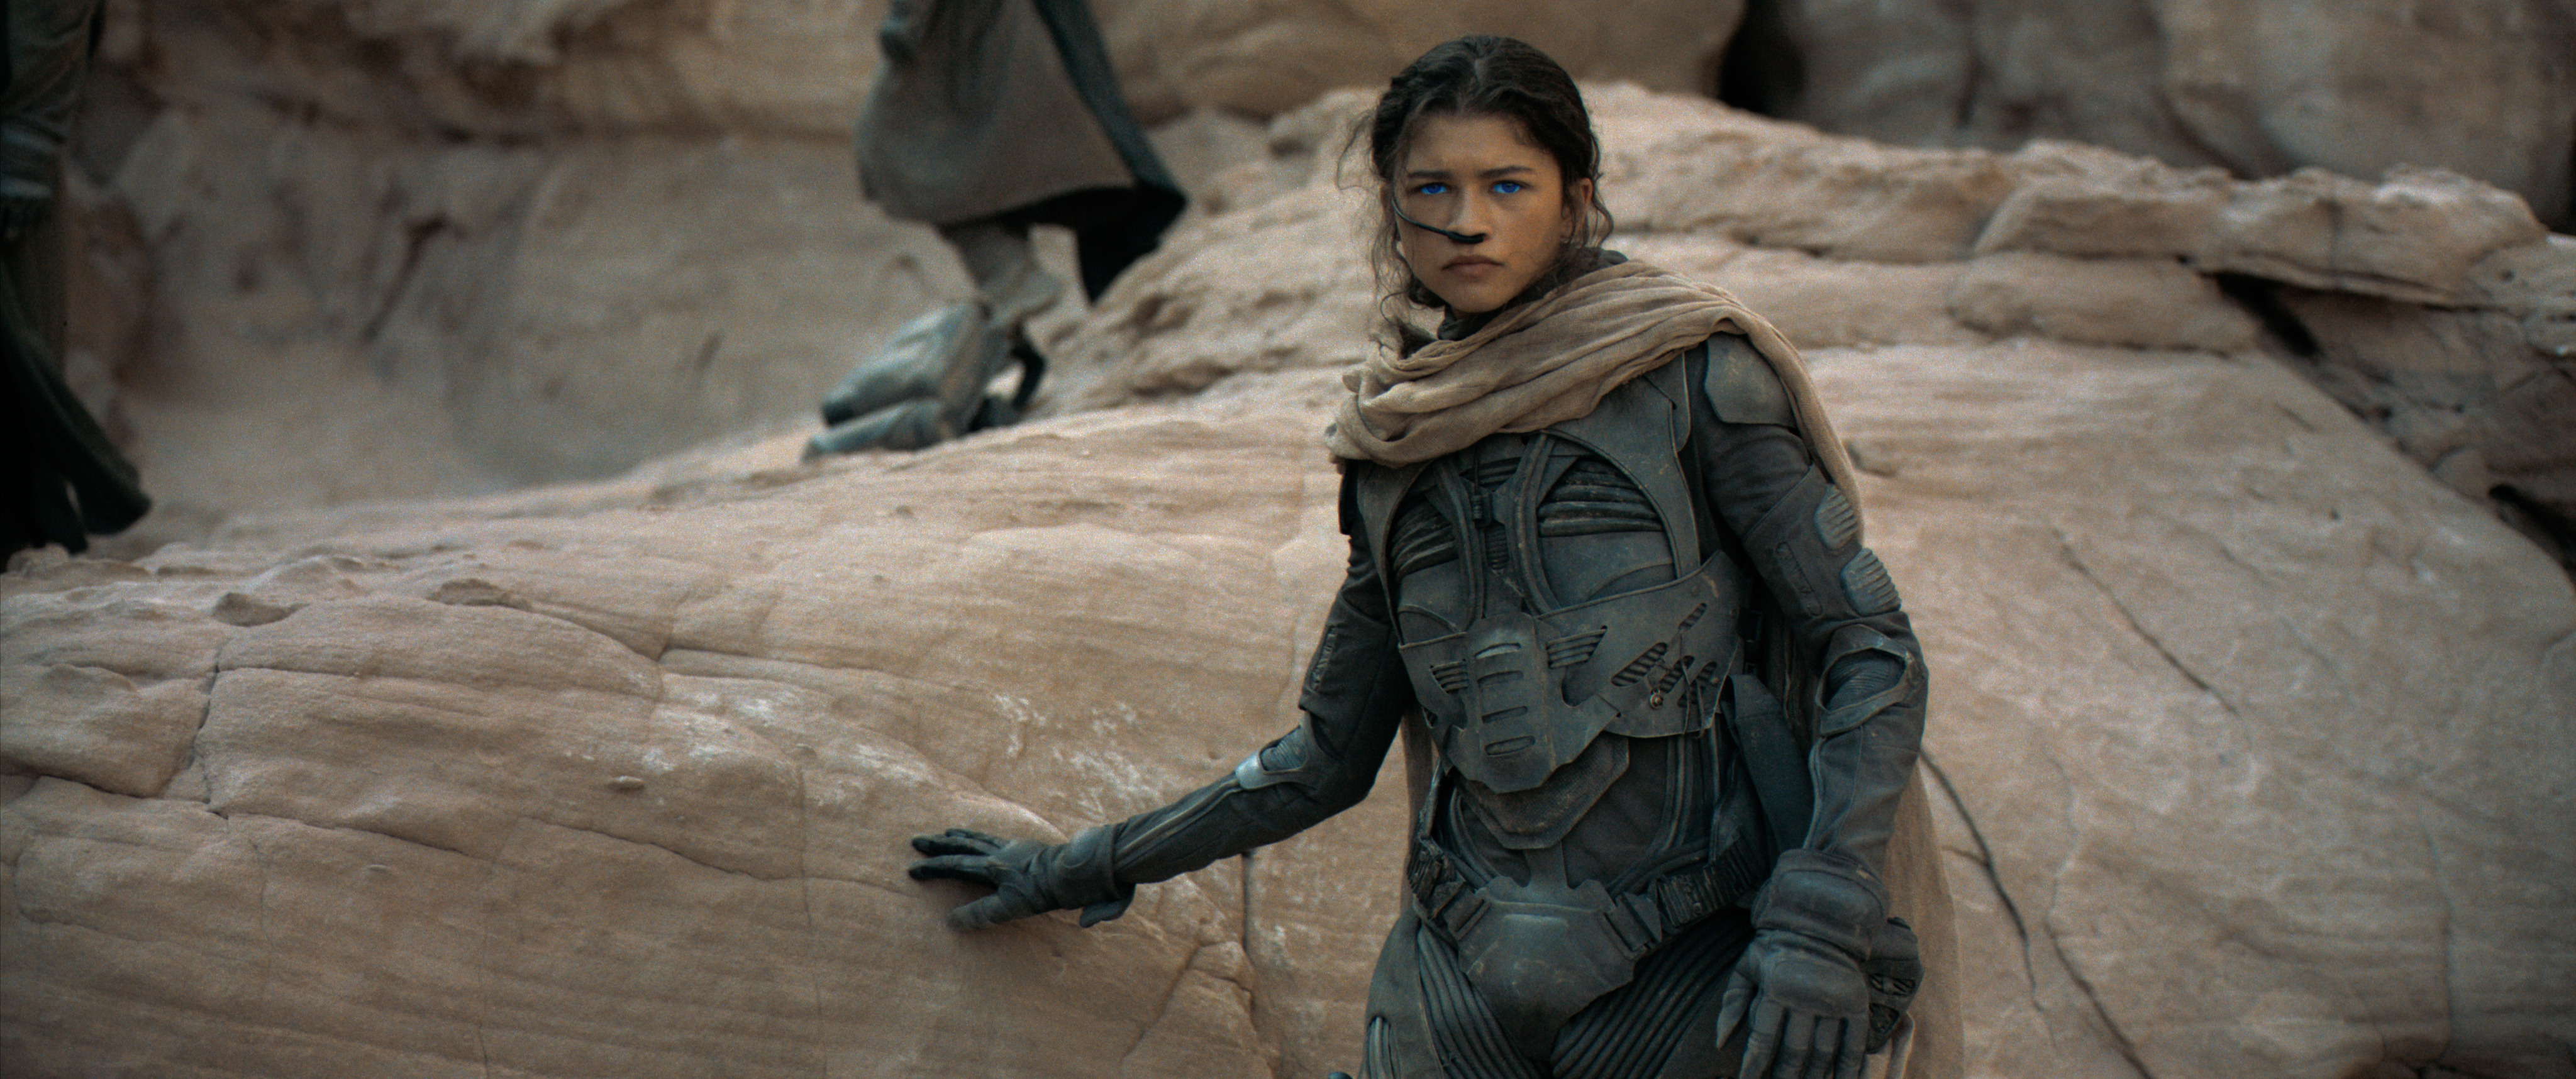 Zendaya as Chani in 'Dune,' which premiered at the Venice Film Festival